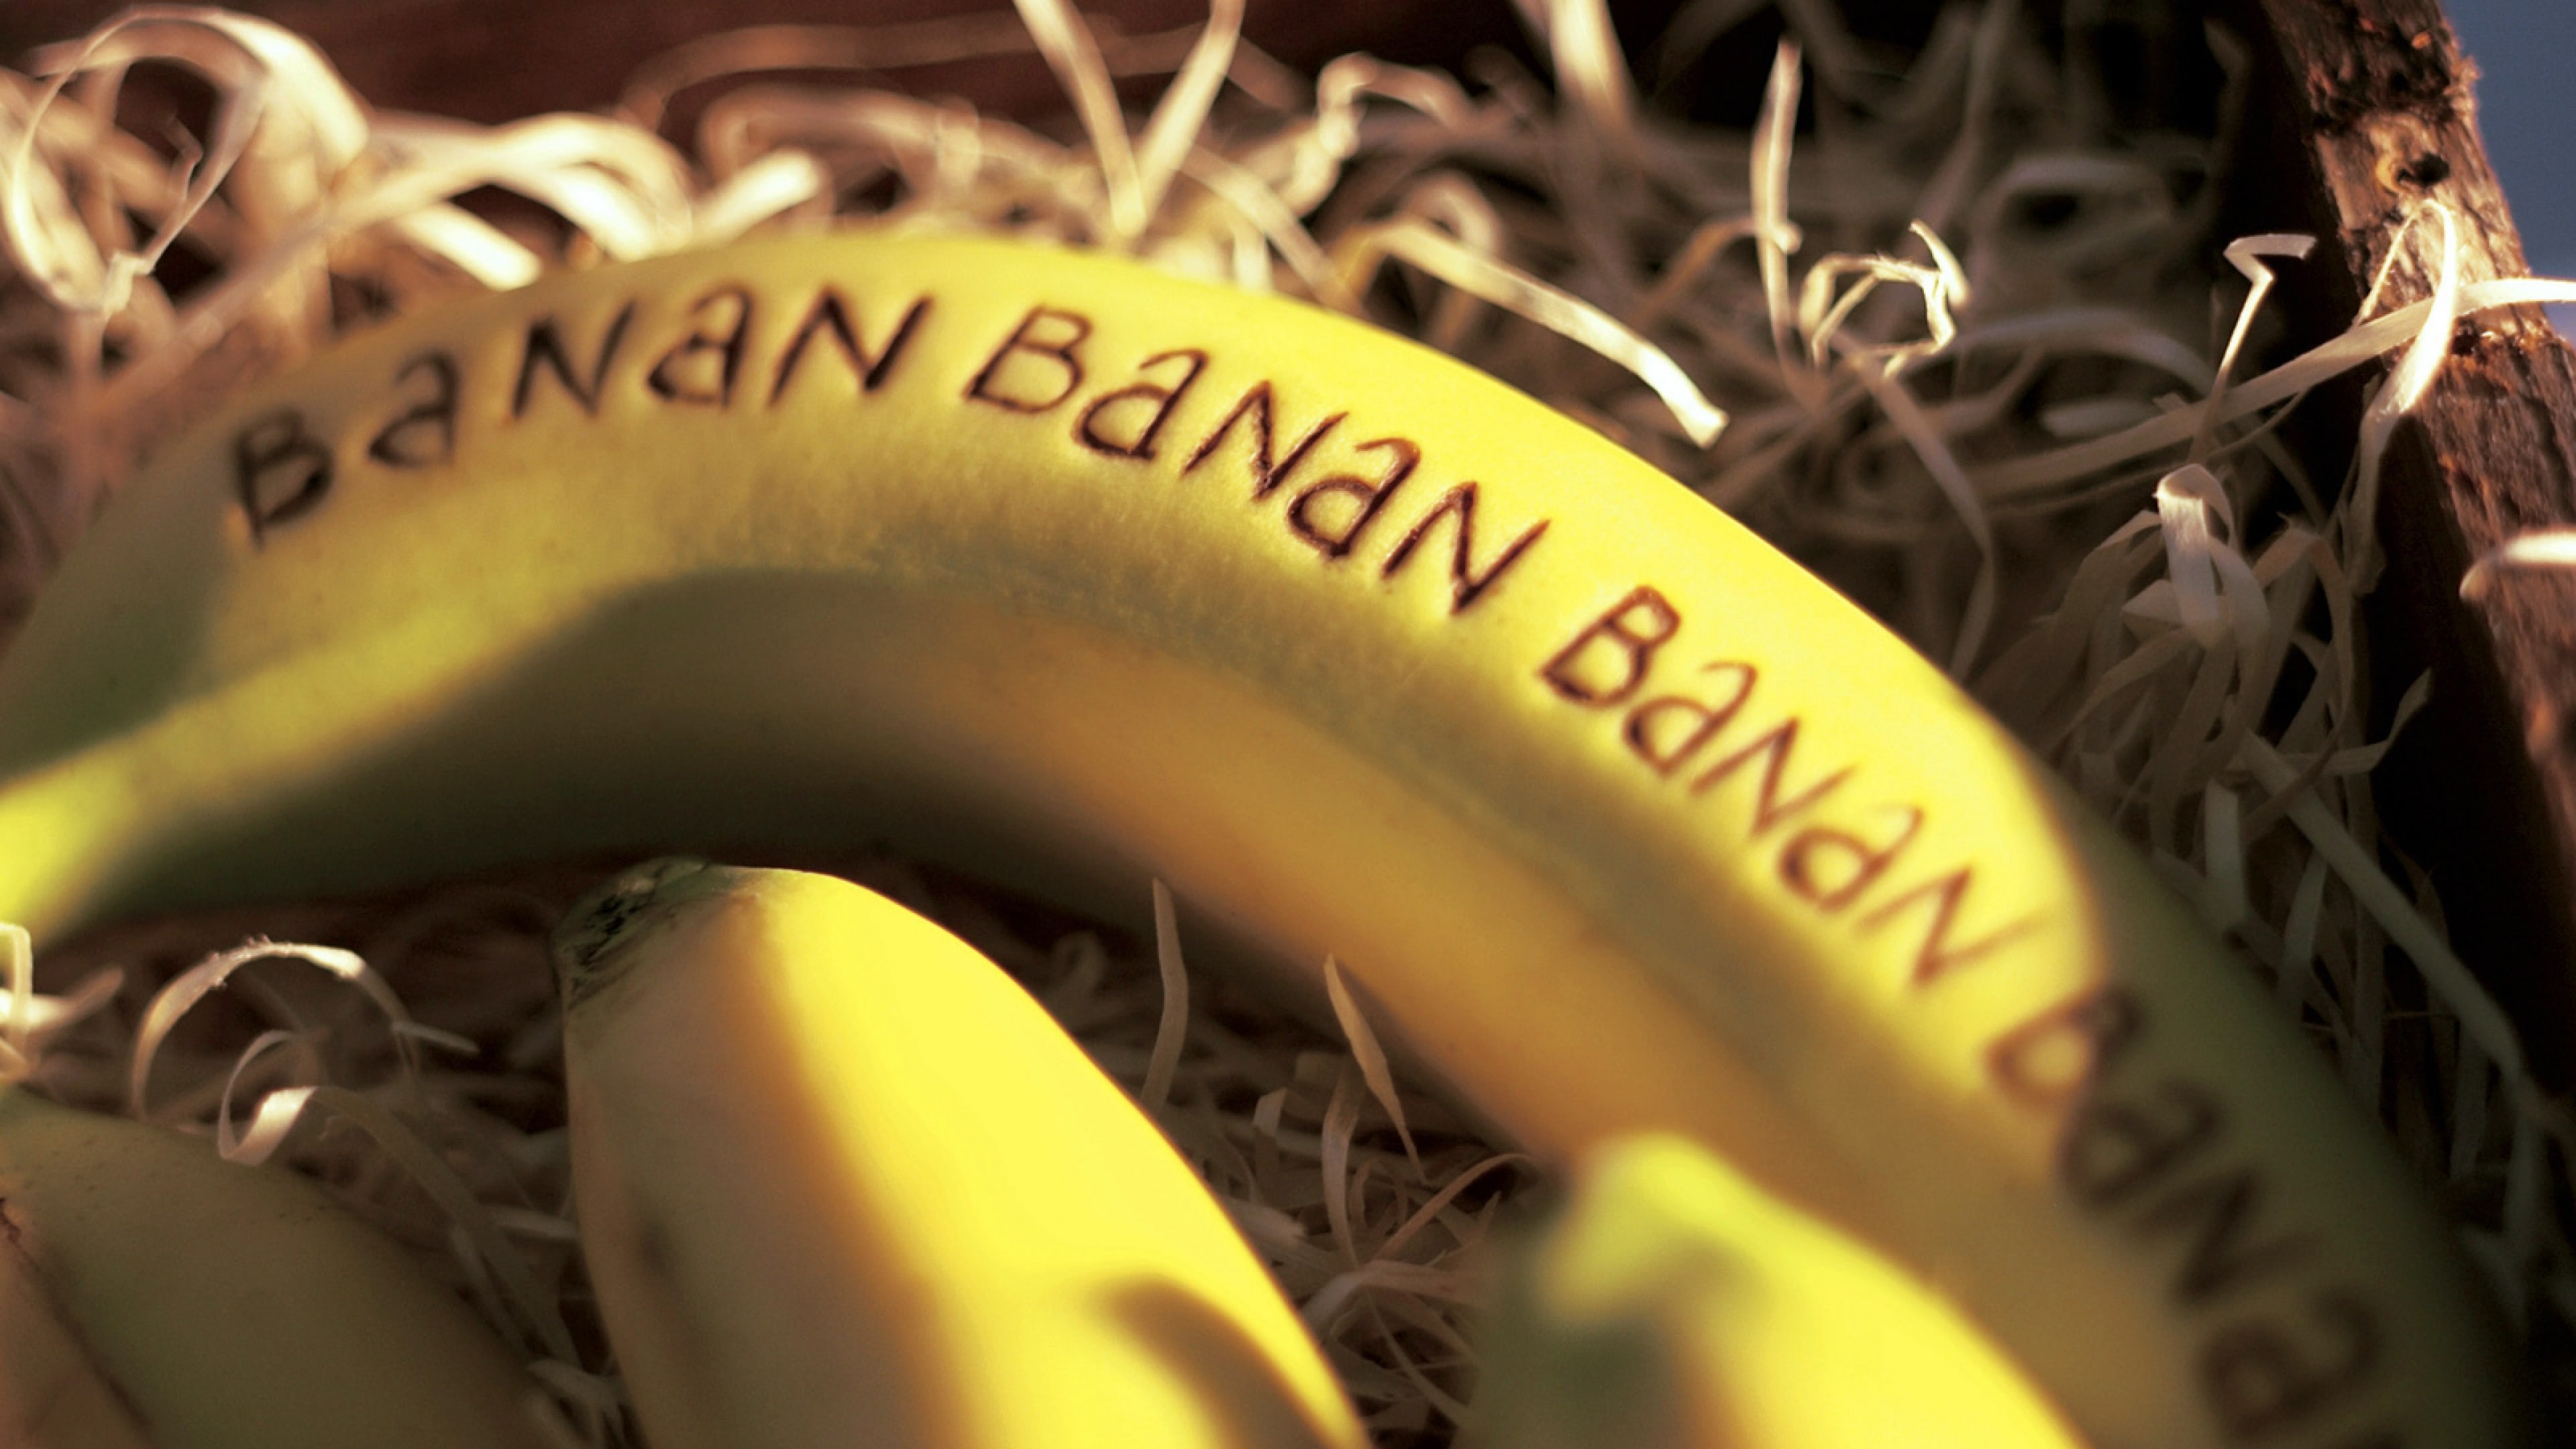 Banana widescreen